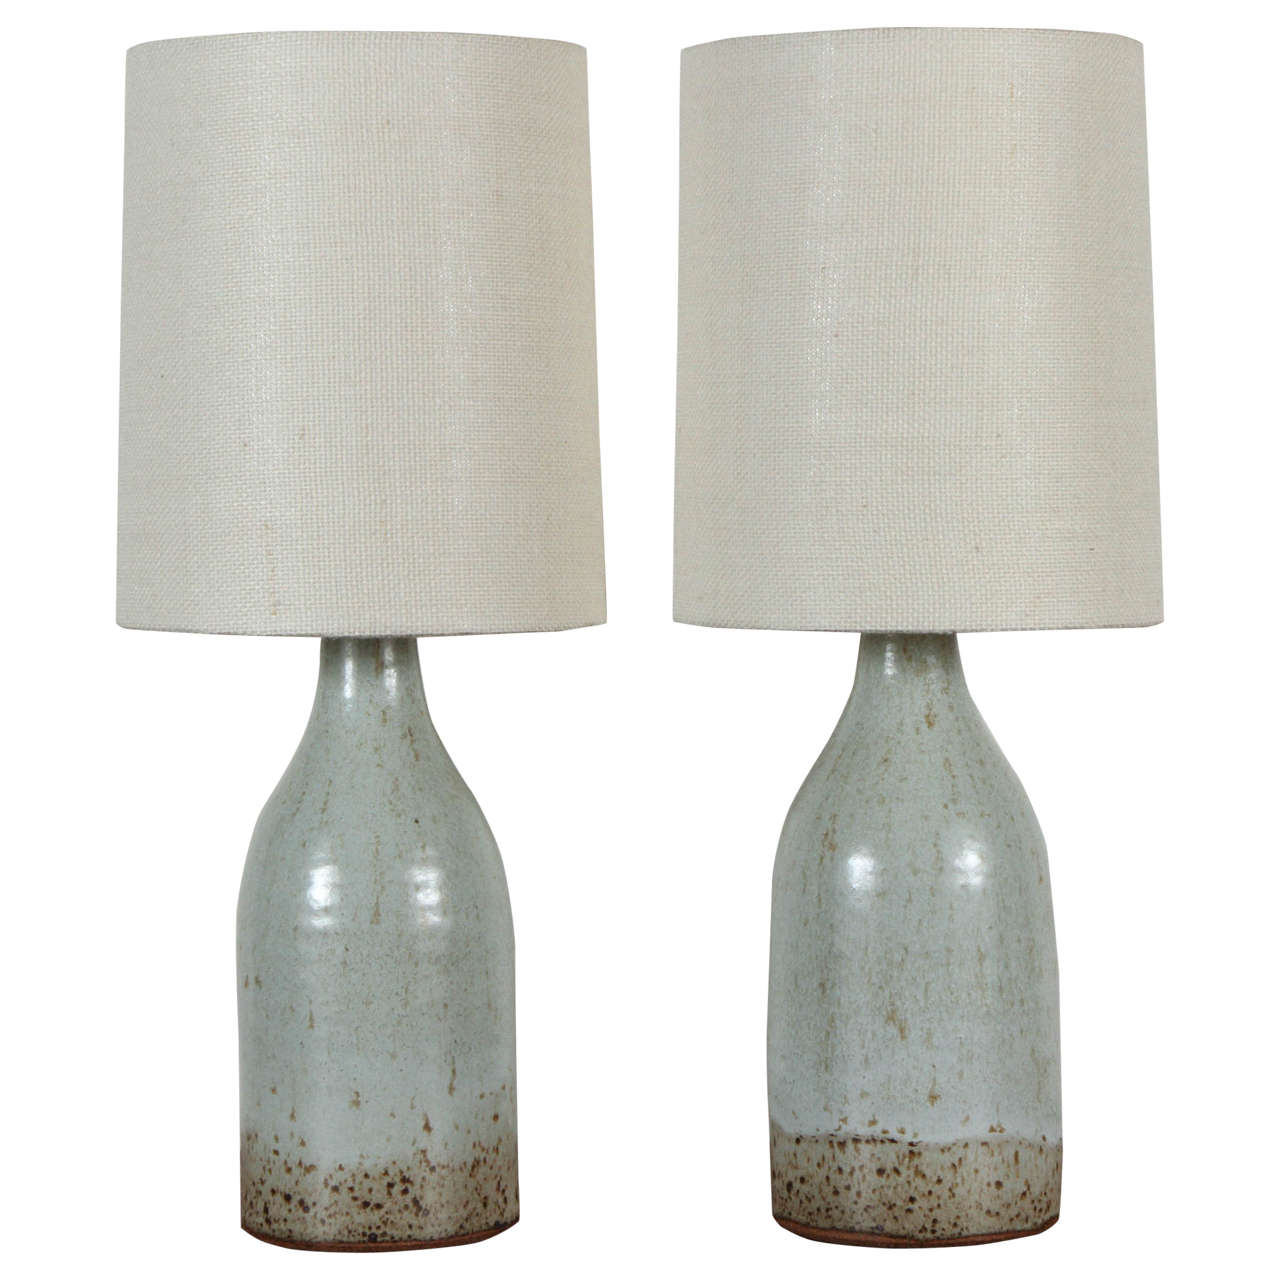 Pair Of Ceramic Lamps By Victoria Morris For